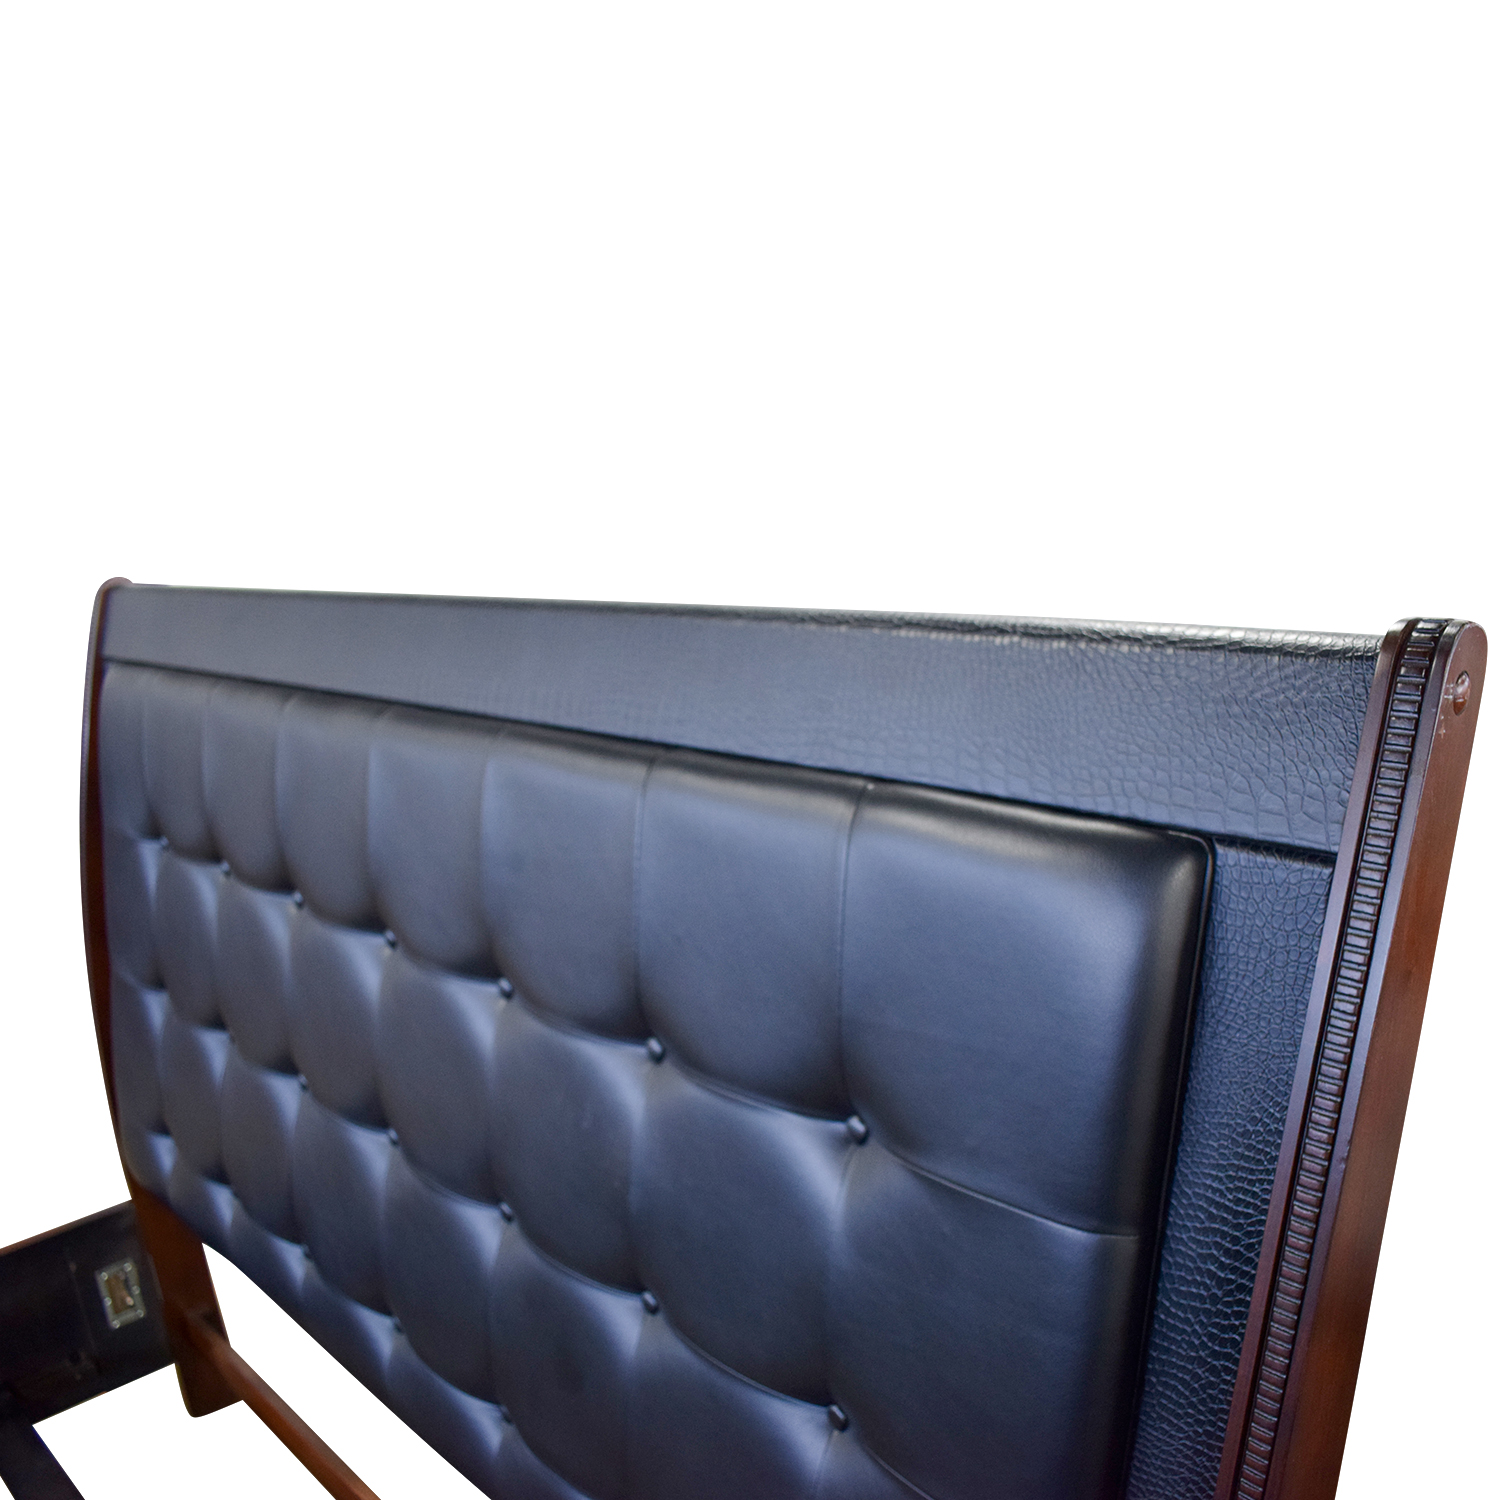 shop Raymour and Flanigan Dundee Black Leather and Wood King Bed Frame Raymour and Flanigan